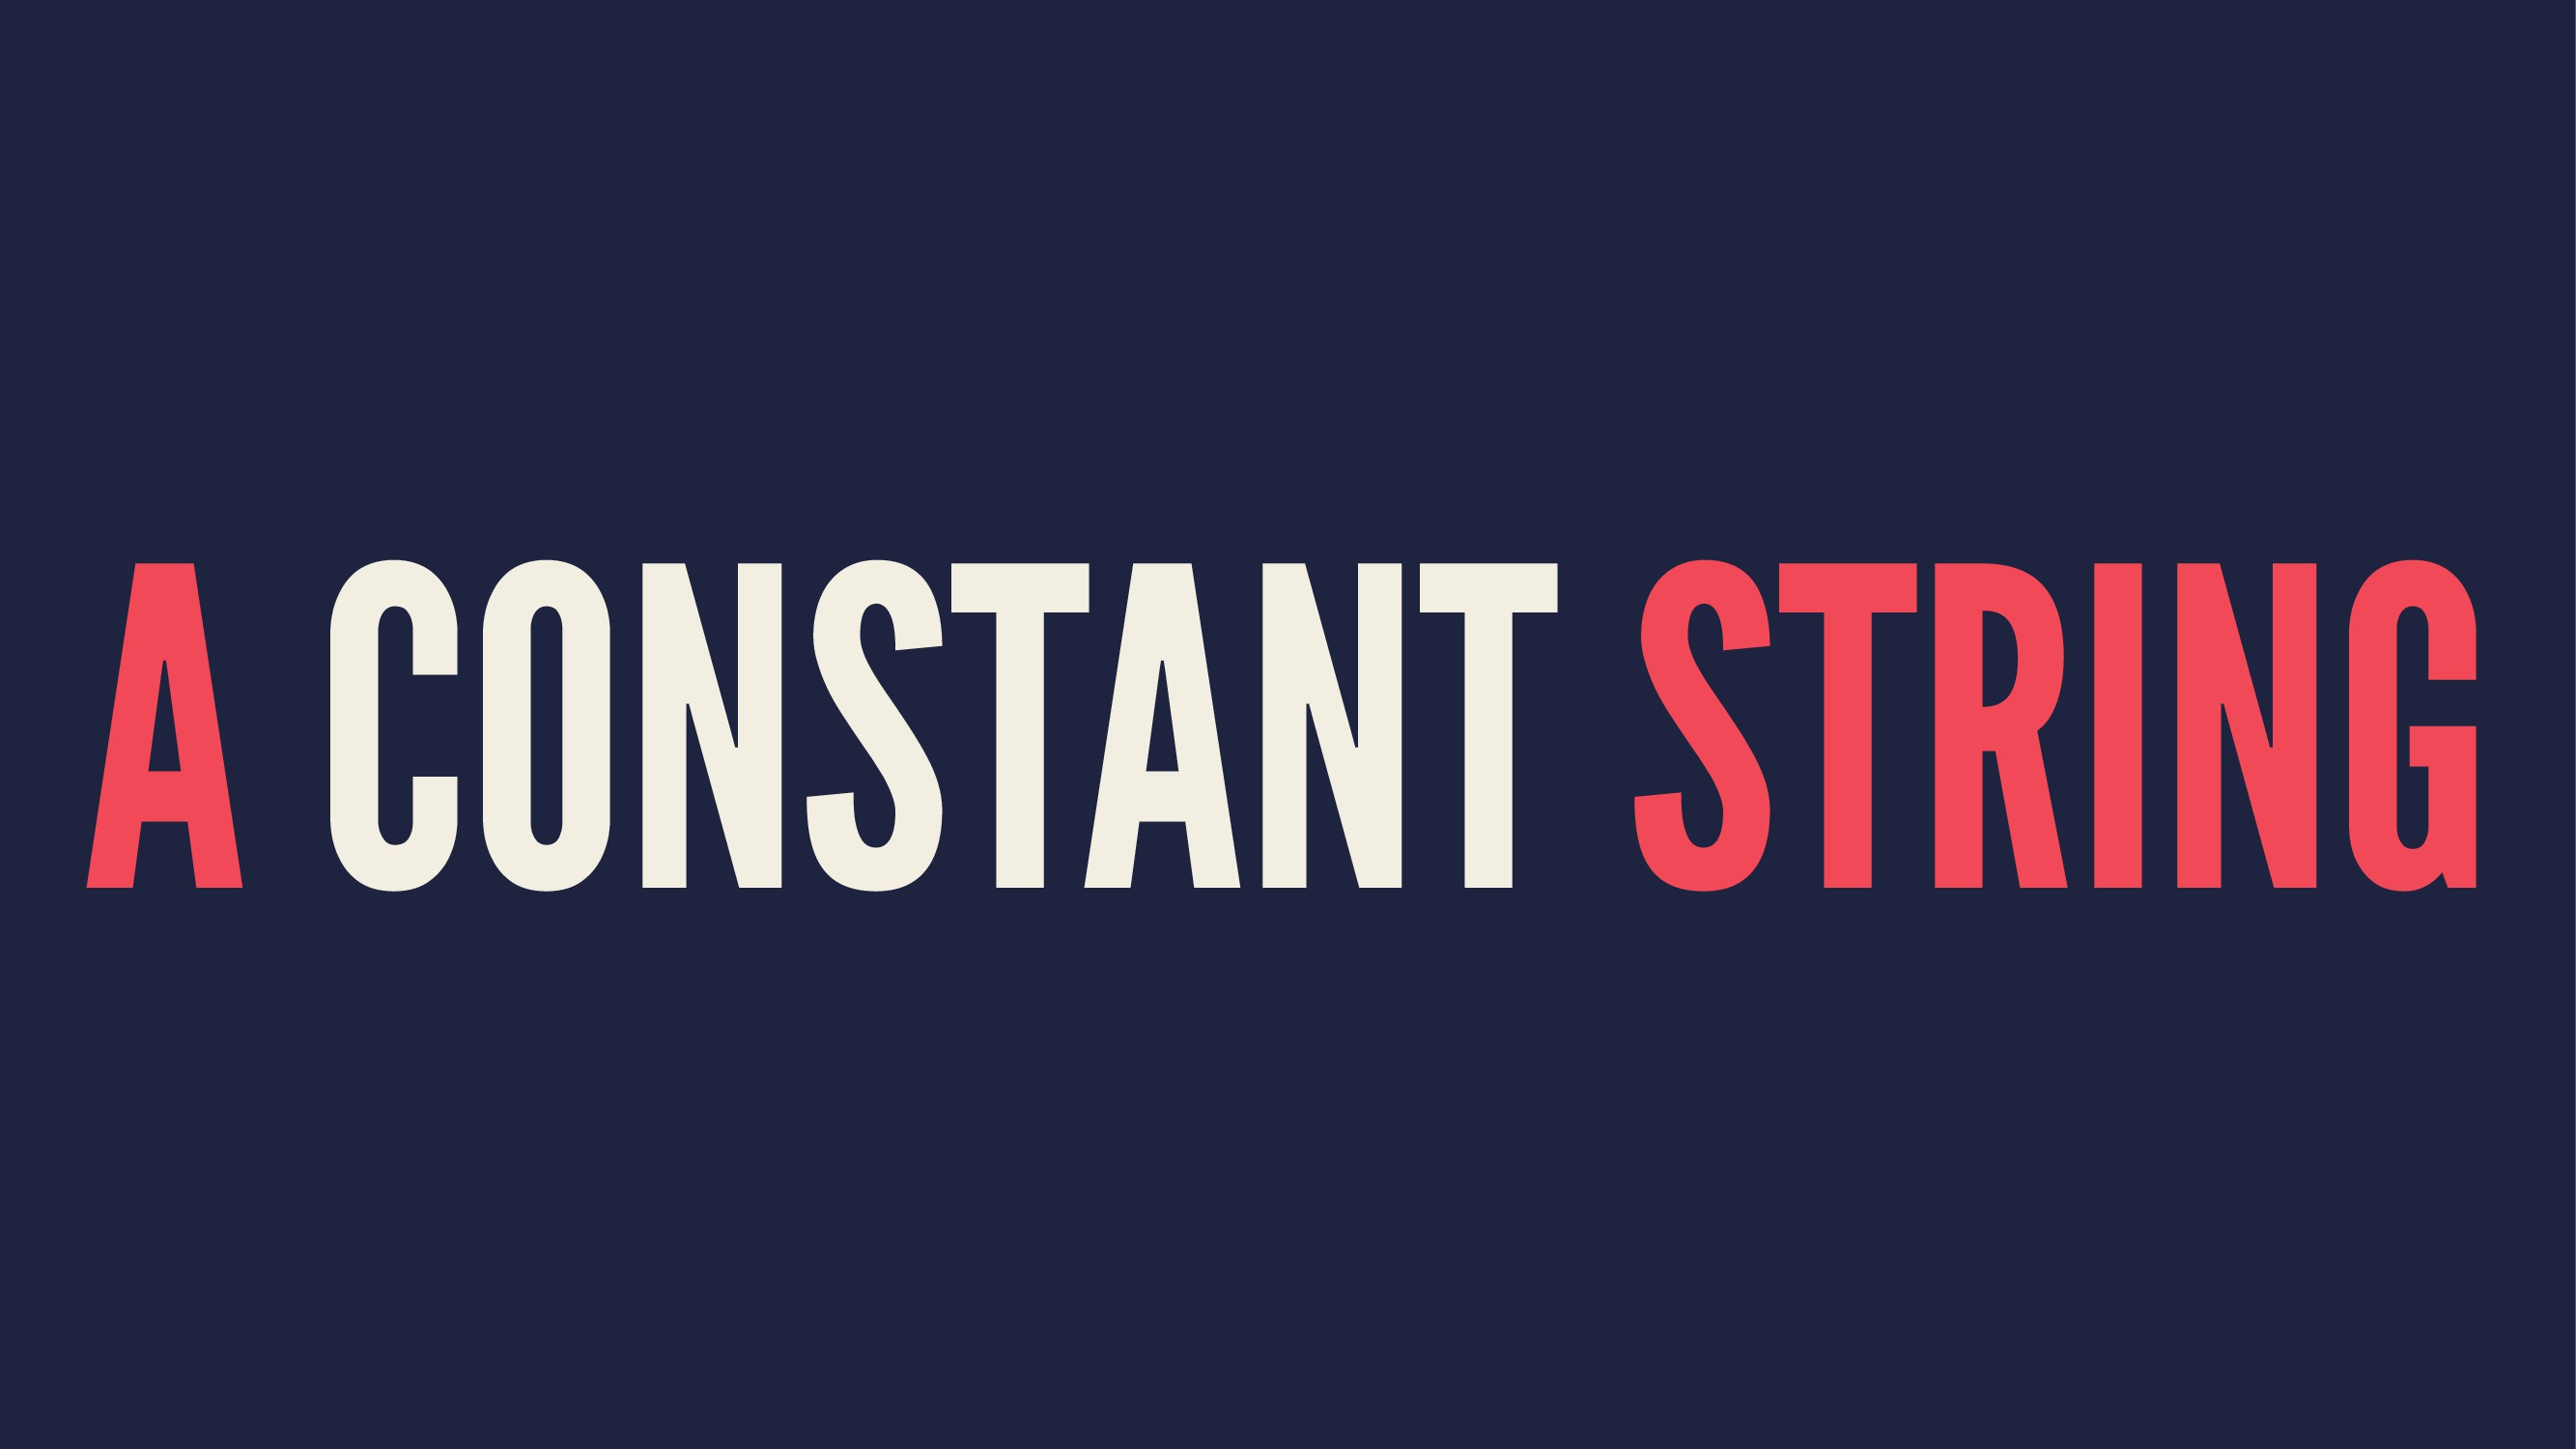 A CONSTANT STRING